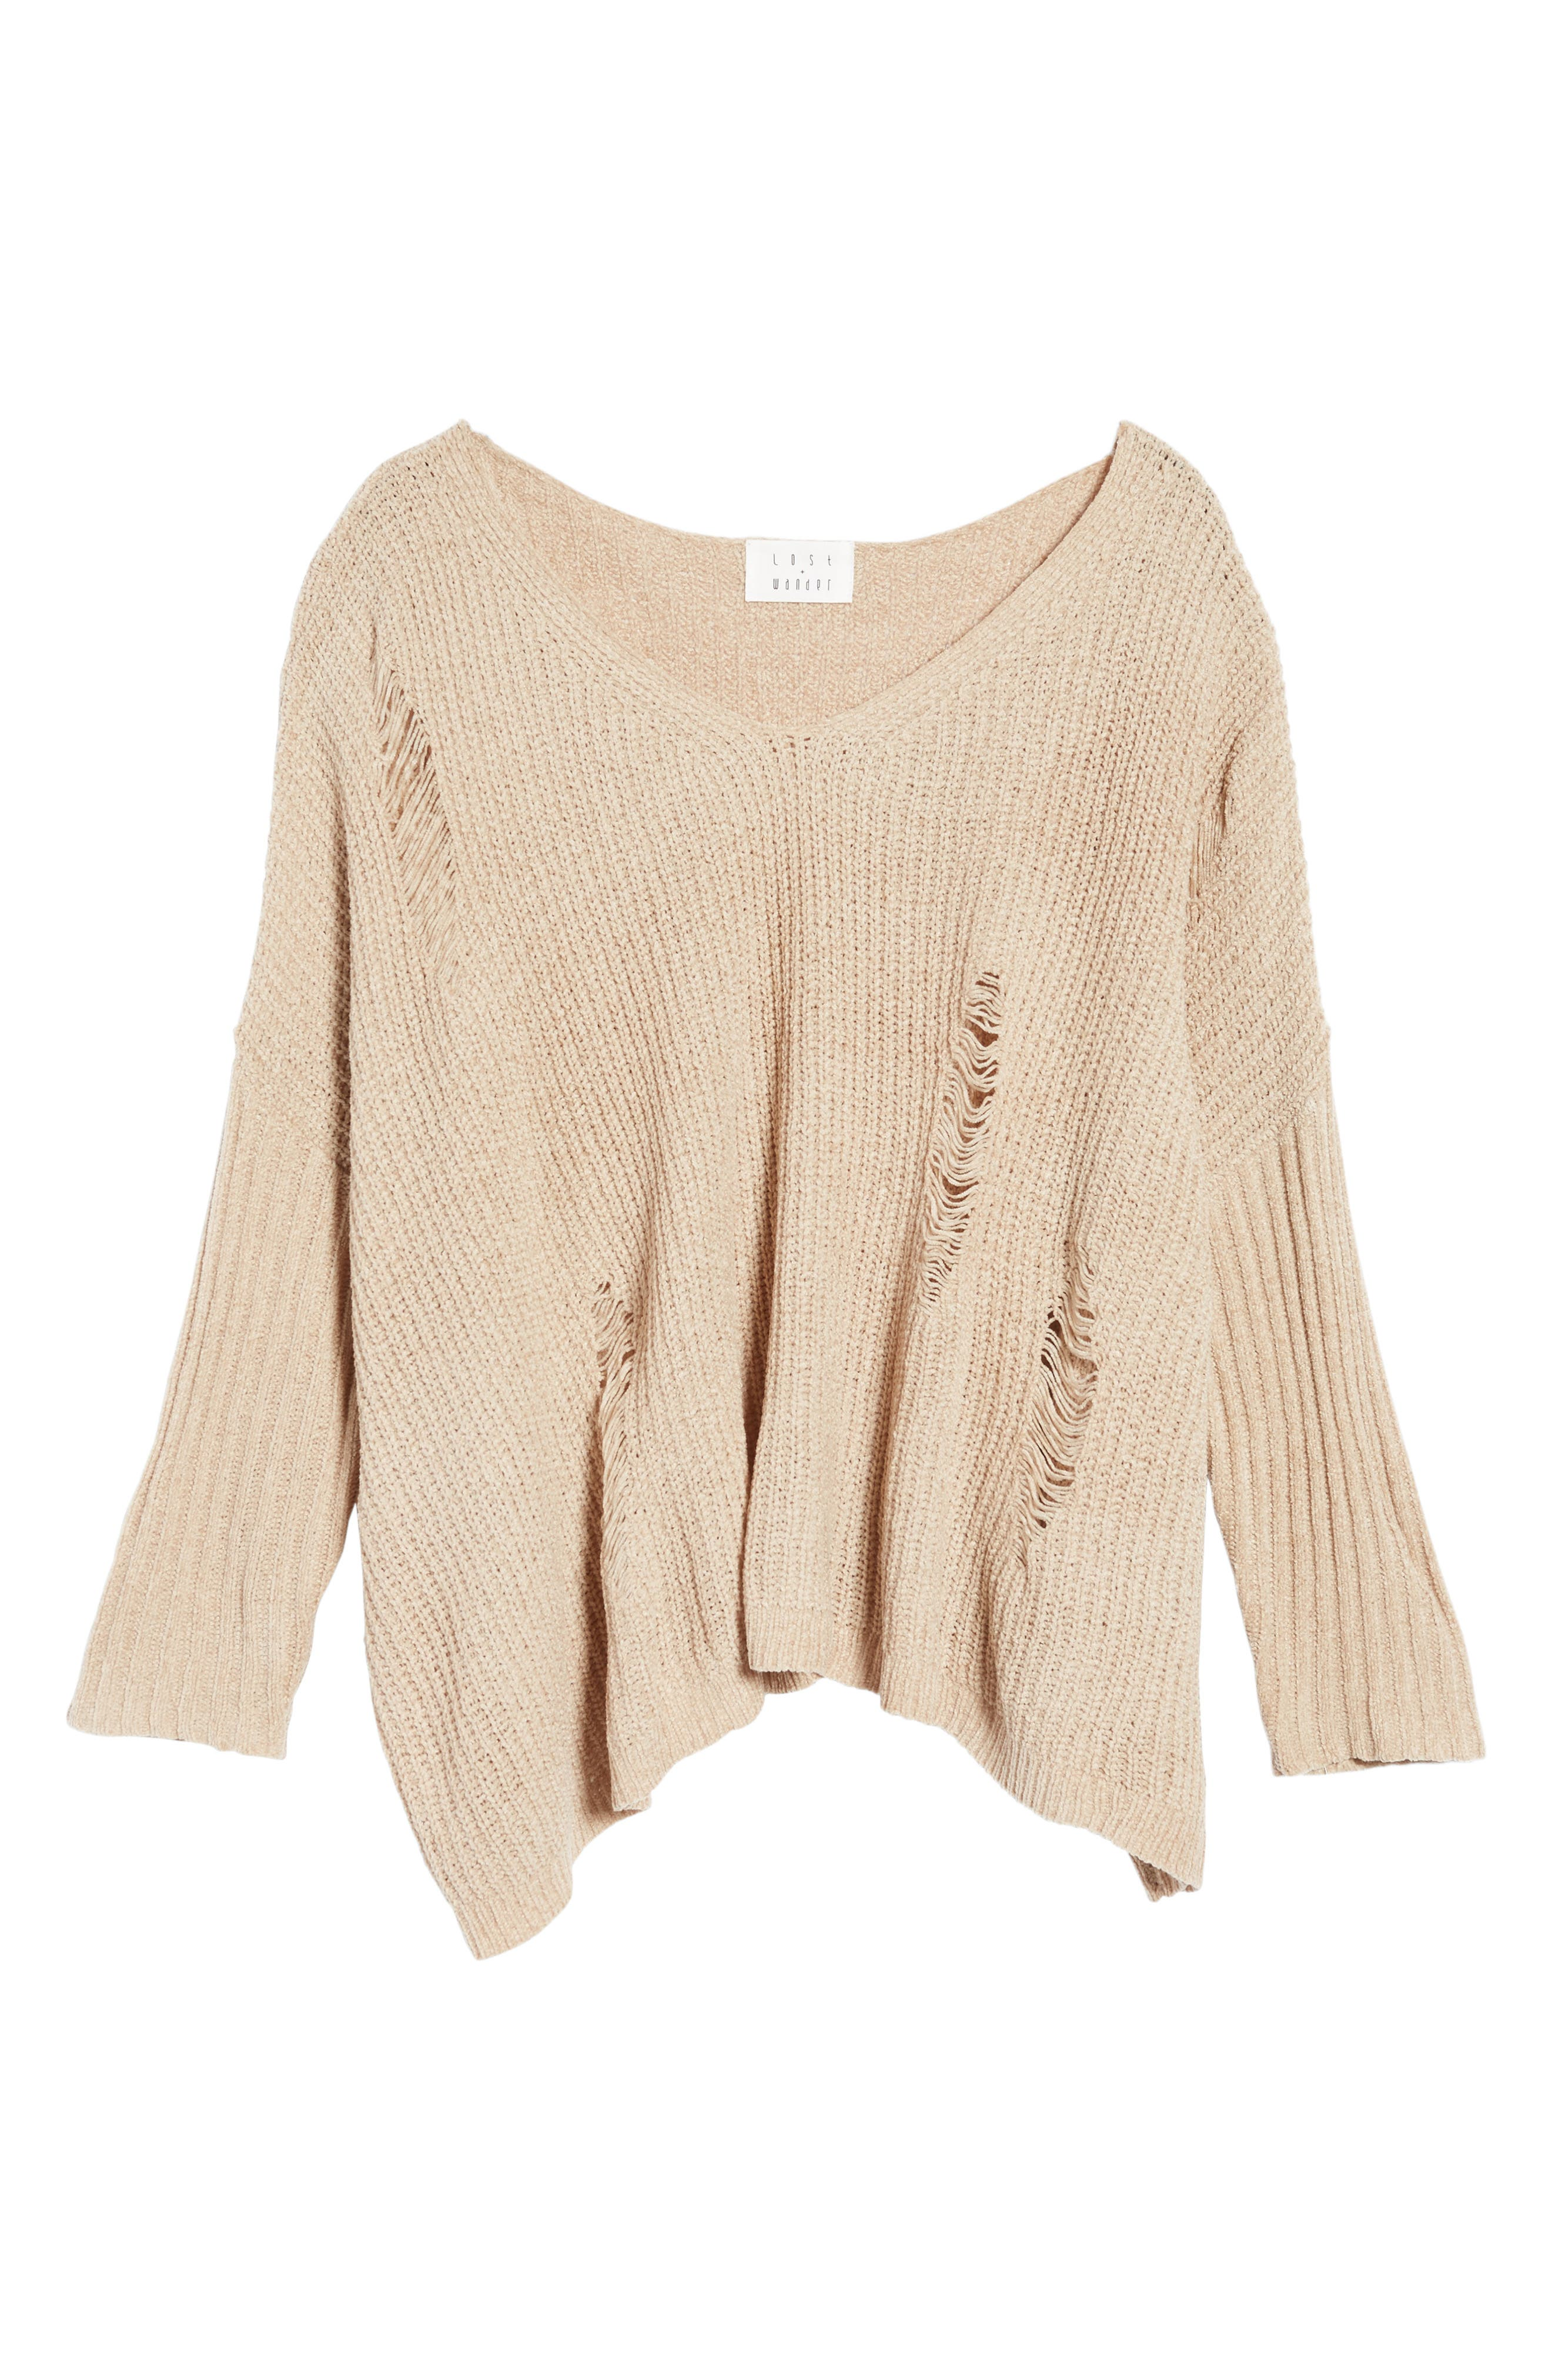 Lily Rose Distressed Sweater,                             Alternate thumbnail 6, color,                             Stone